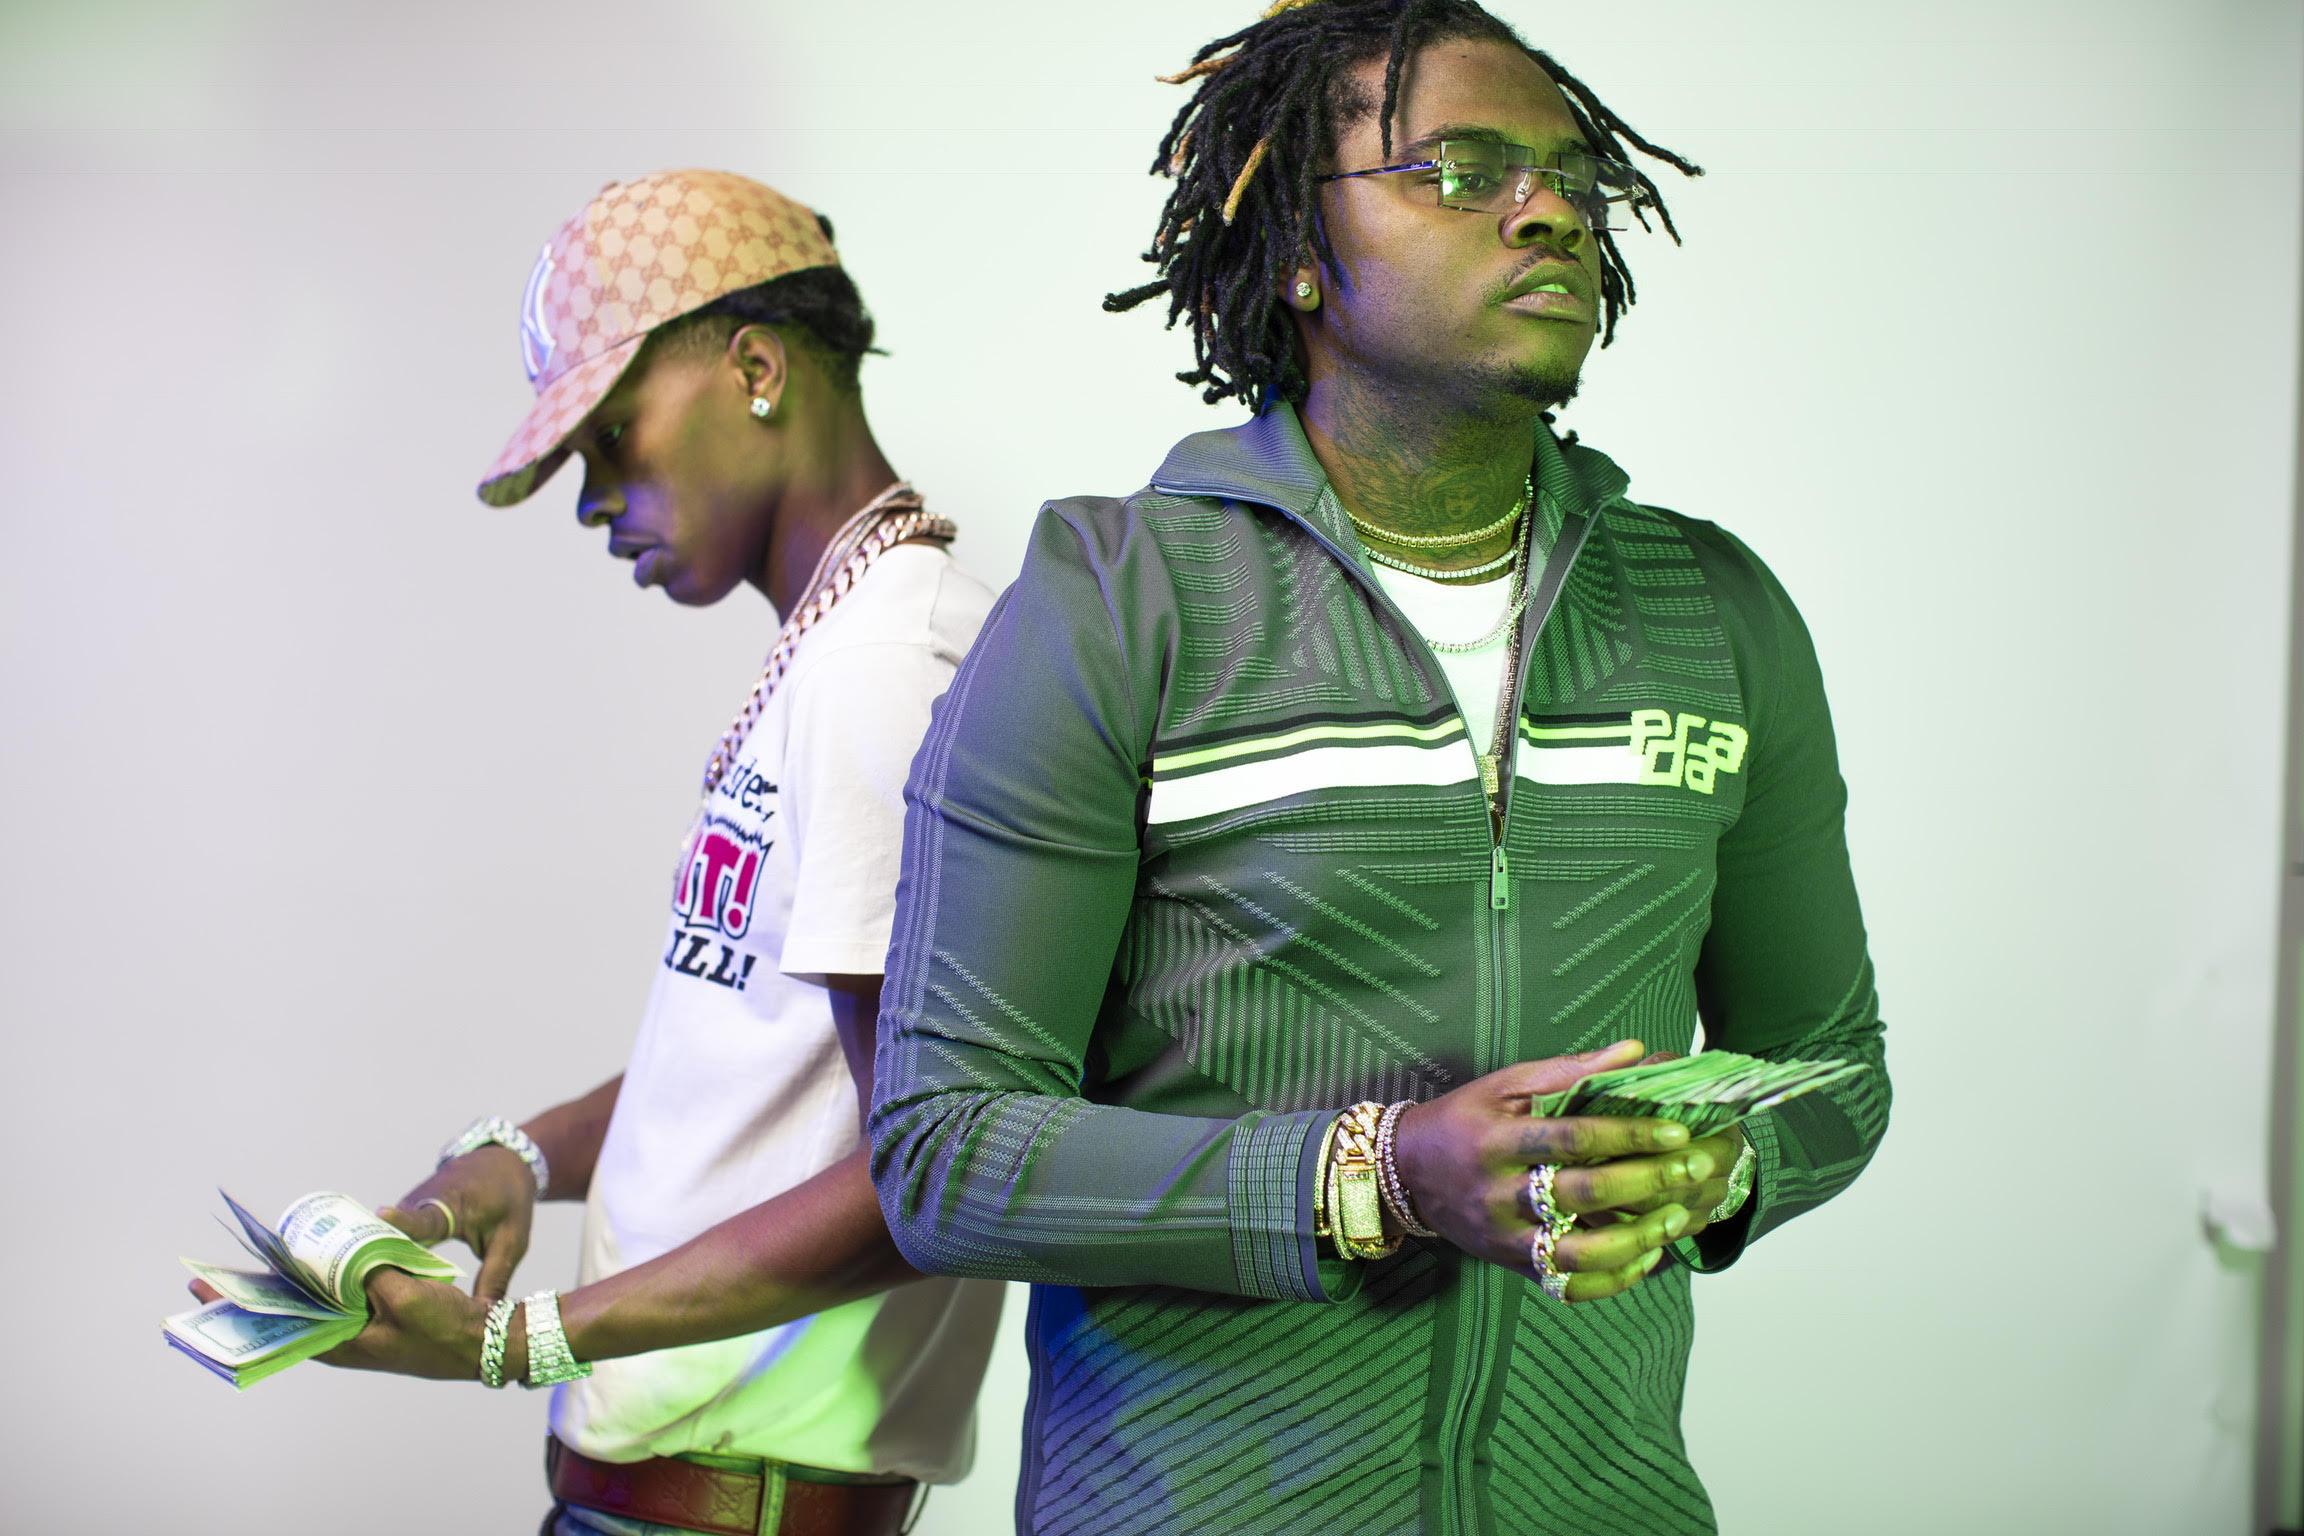 Gunna Taught Lil Baby How To Rap Now Theyre The Best Duo Of 2018